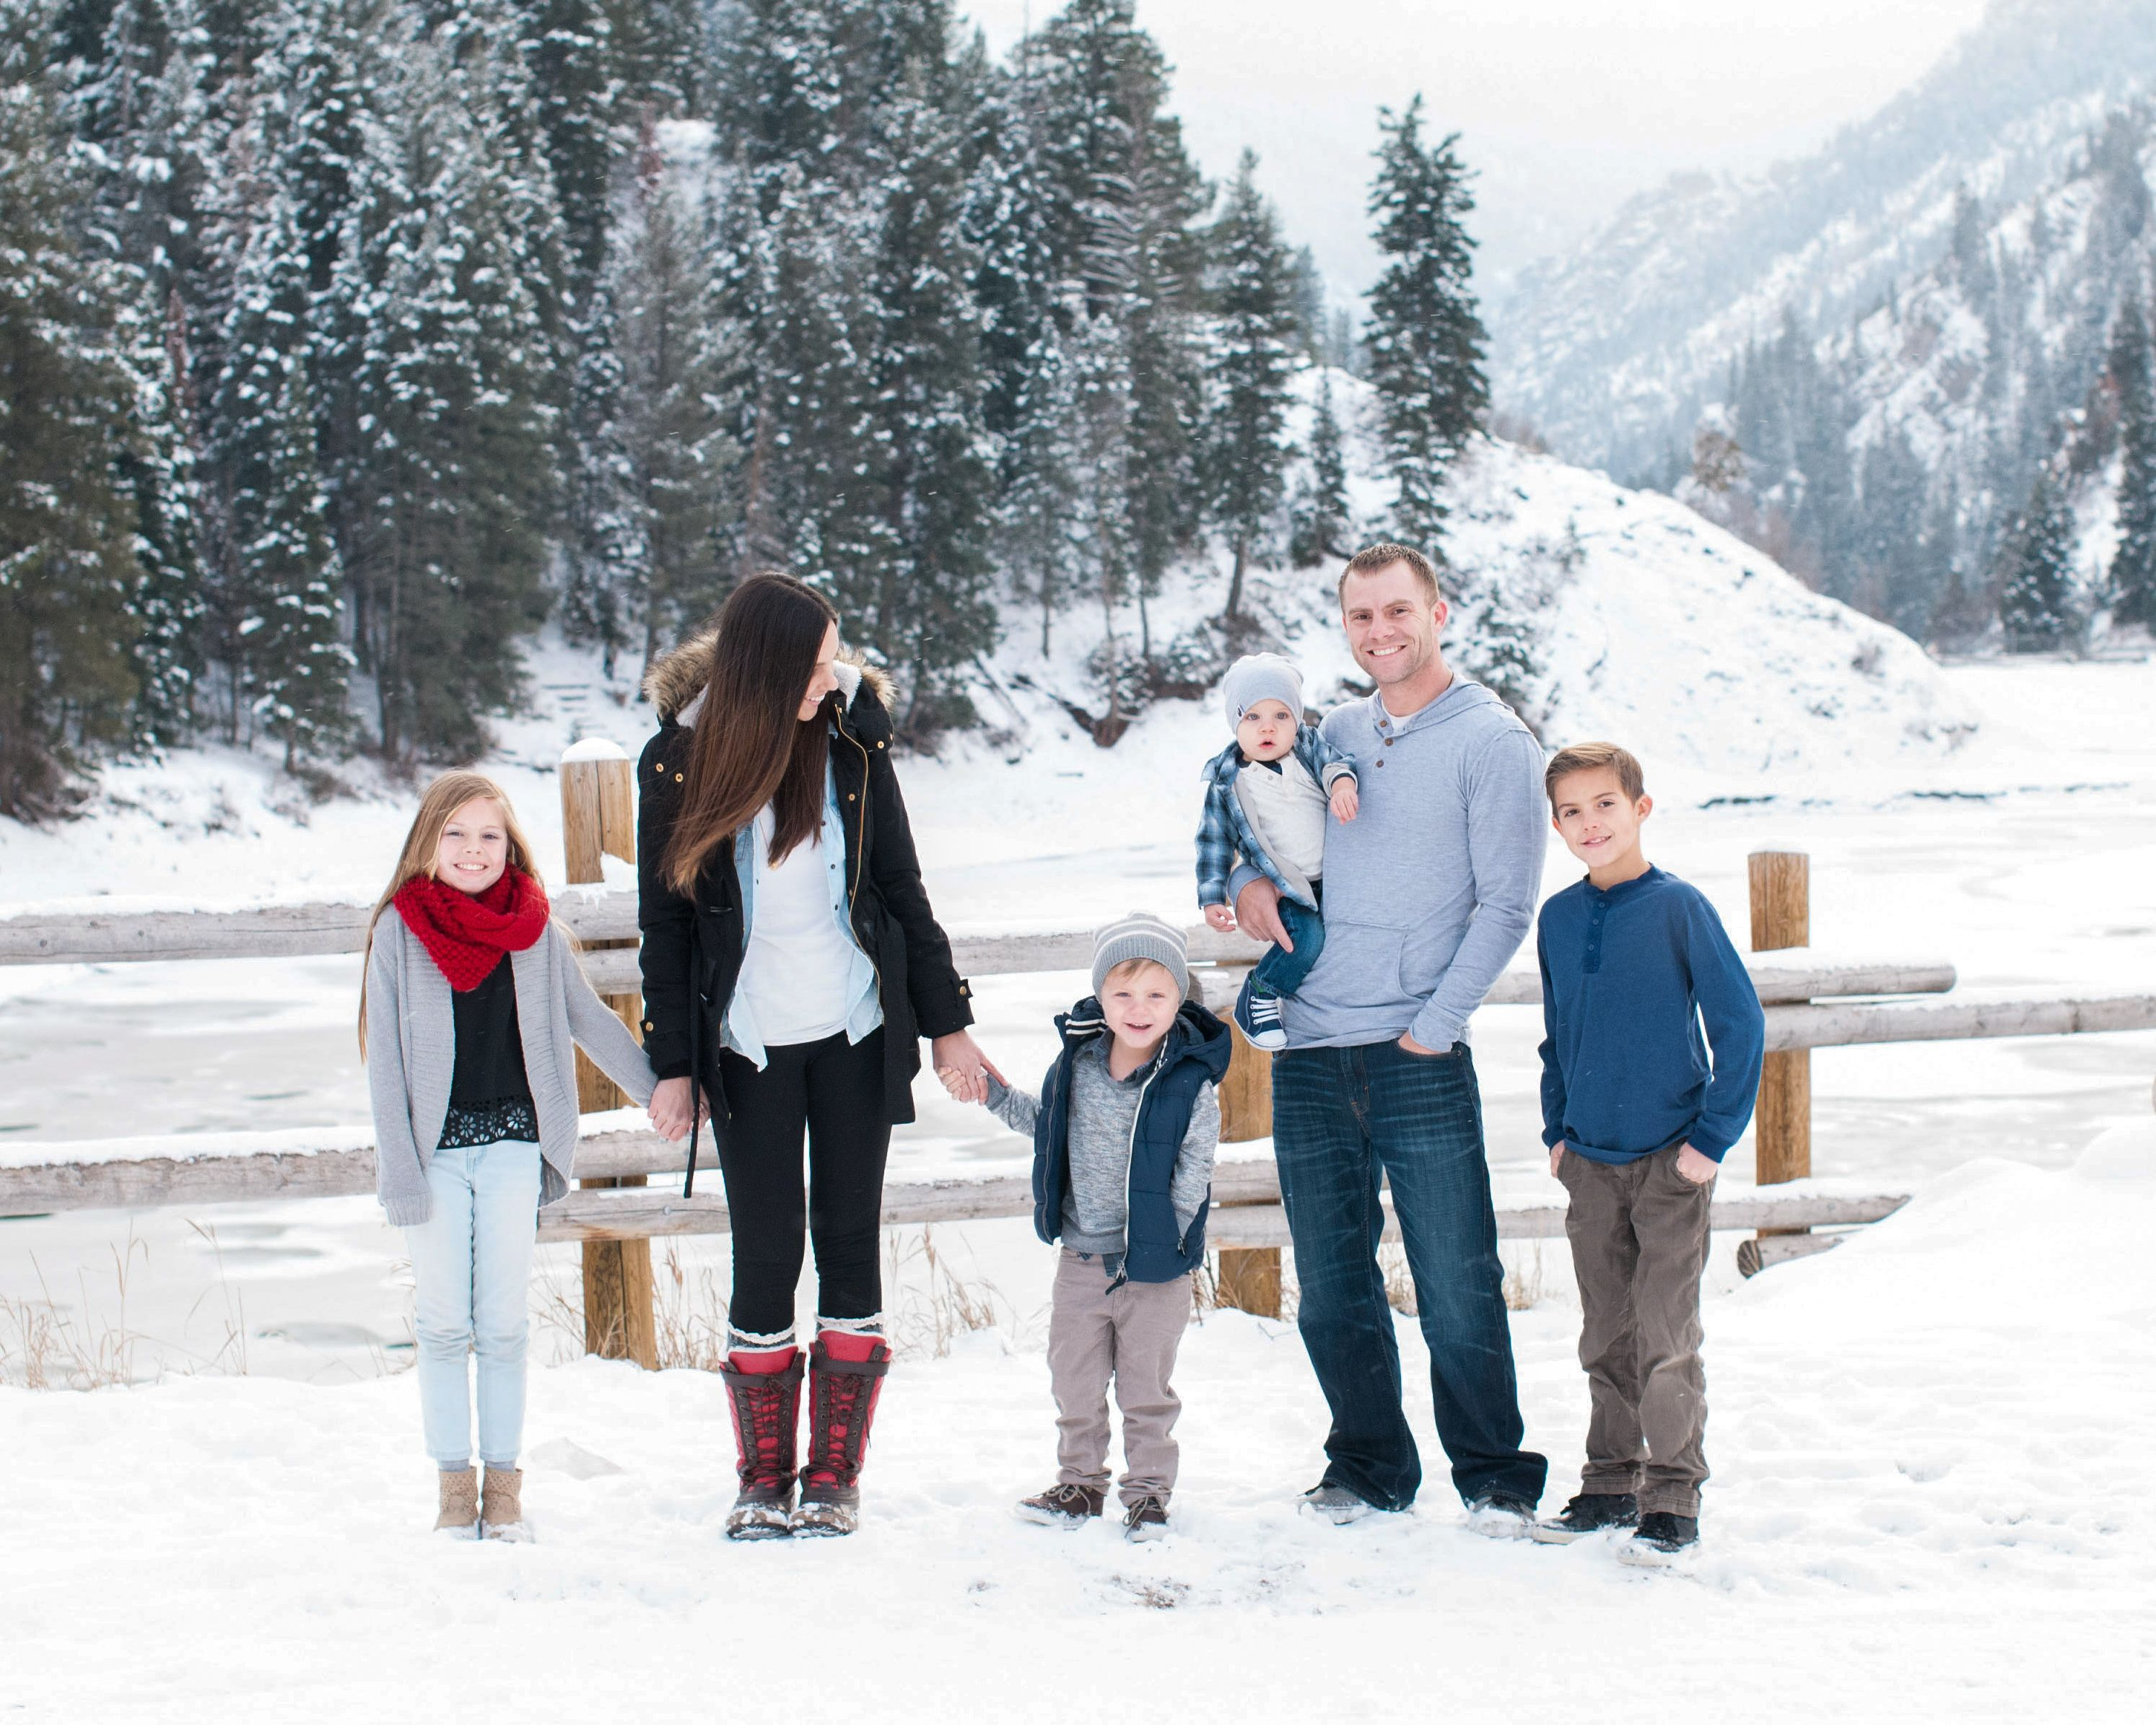 Snow family pictures, winter family pictures, family photography, Tibble Fork, Christmas picture ideas, outdoor photography, Krystal Lou Photography. #winterfamilyphotography